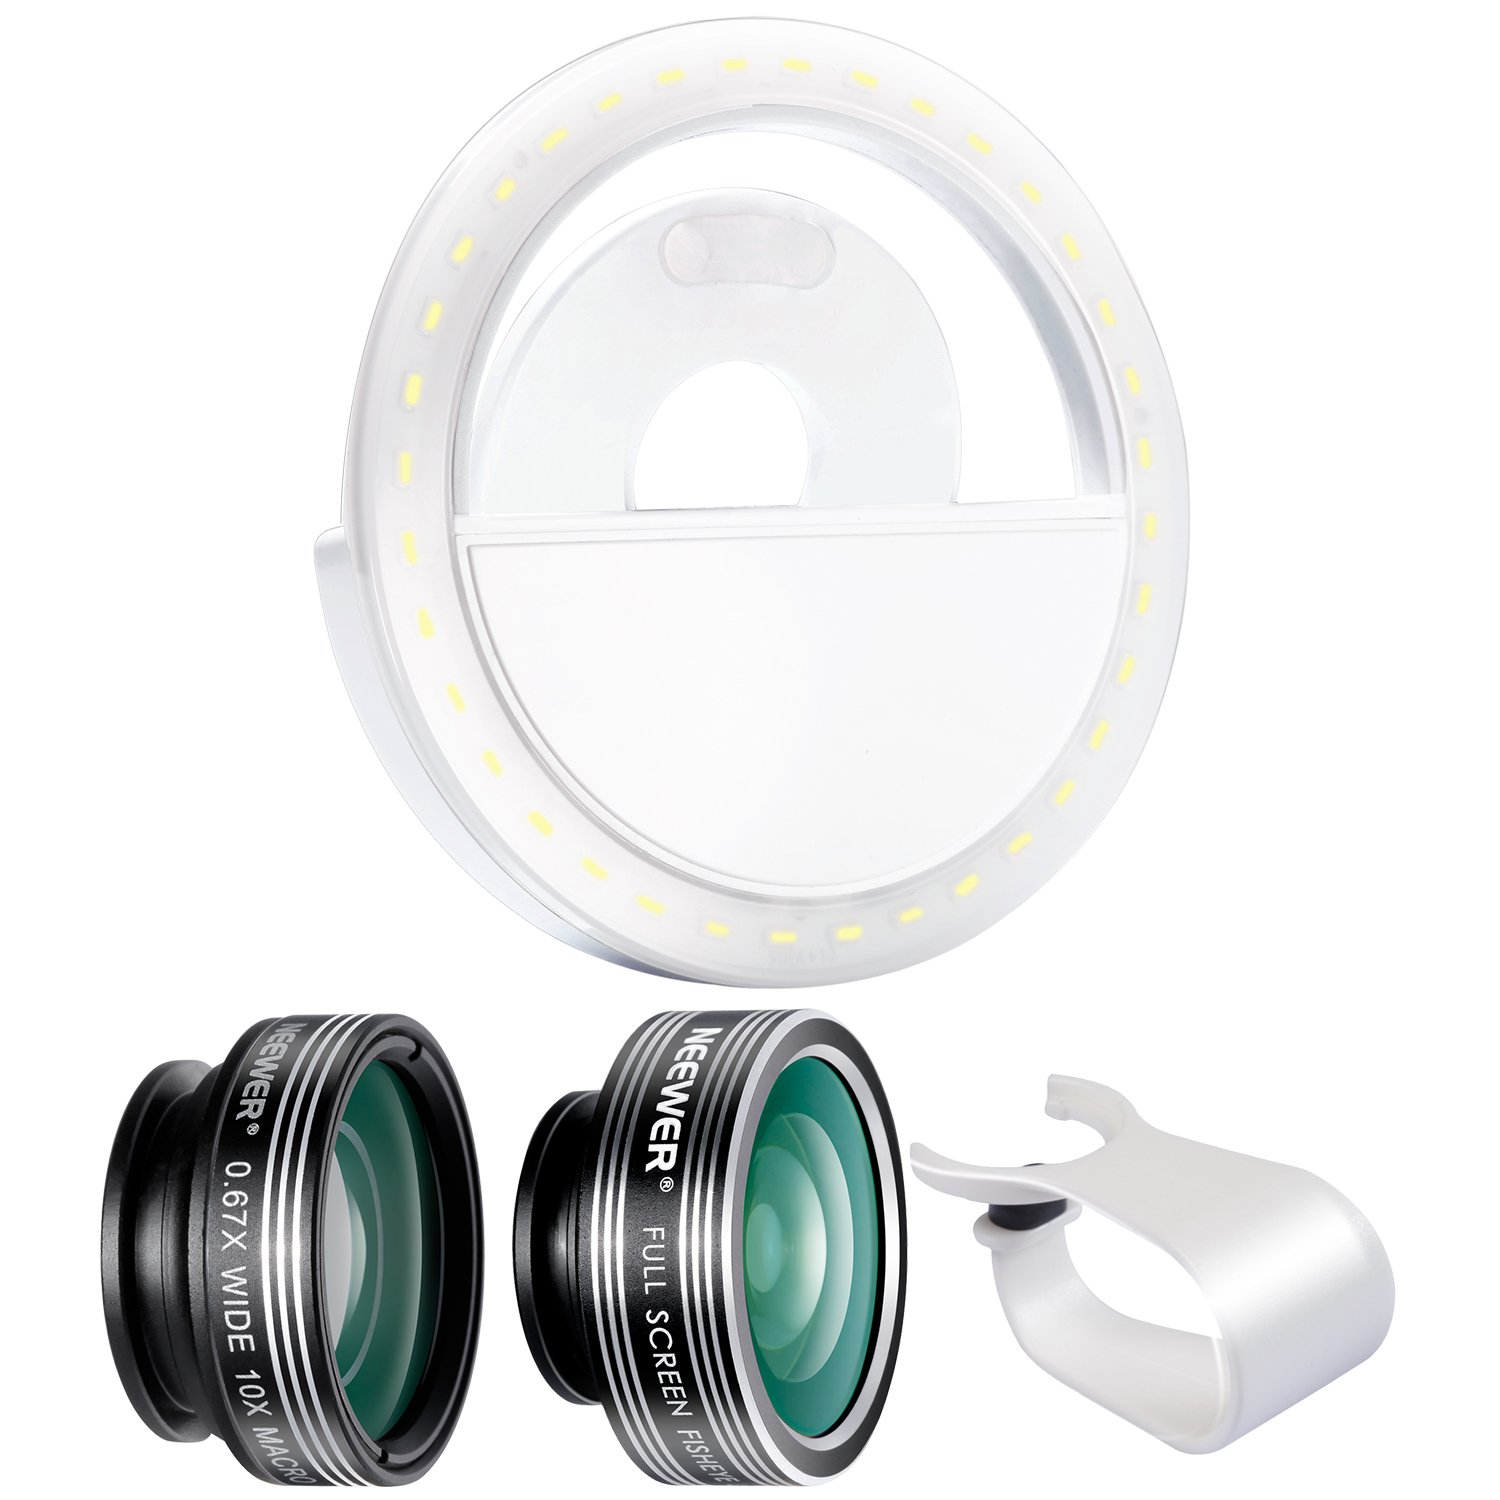 Neewer Cellphone Photography Clip-on Lens and Light Kit:3-in-1 Lens Kit,LED Selfie Ring Light with 3 Level Brightness for Android Tablets iPad iPhone Samsung Galaxy and other Smartphones by Neewer